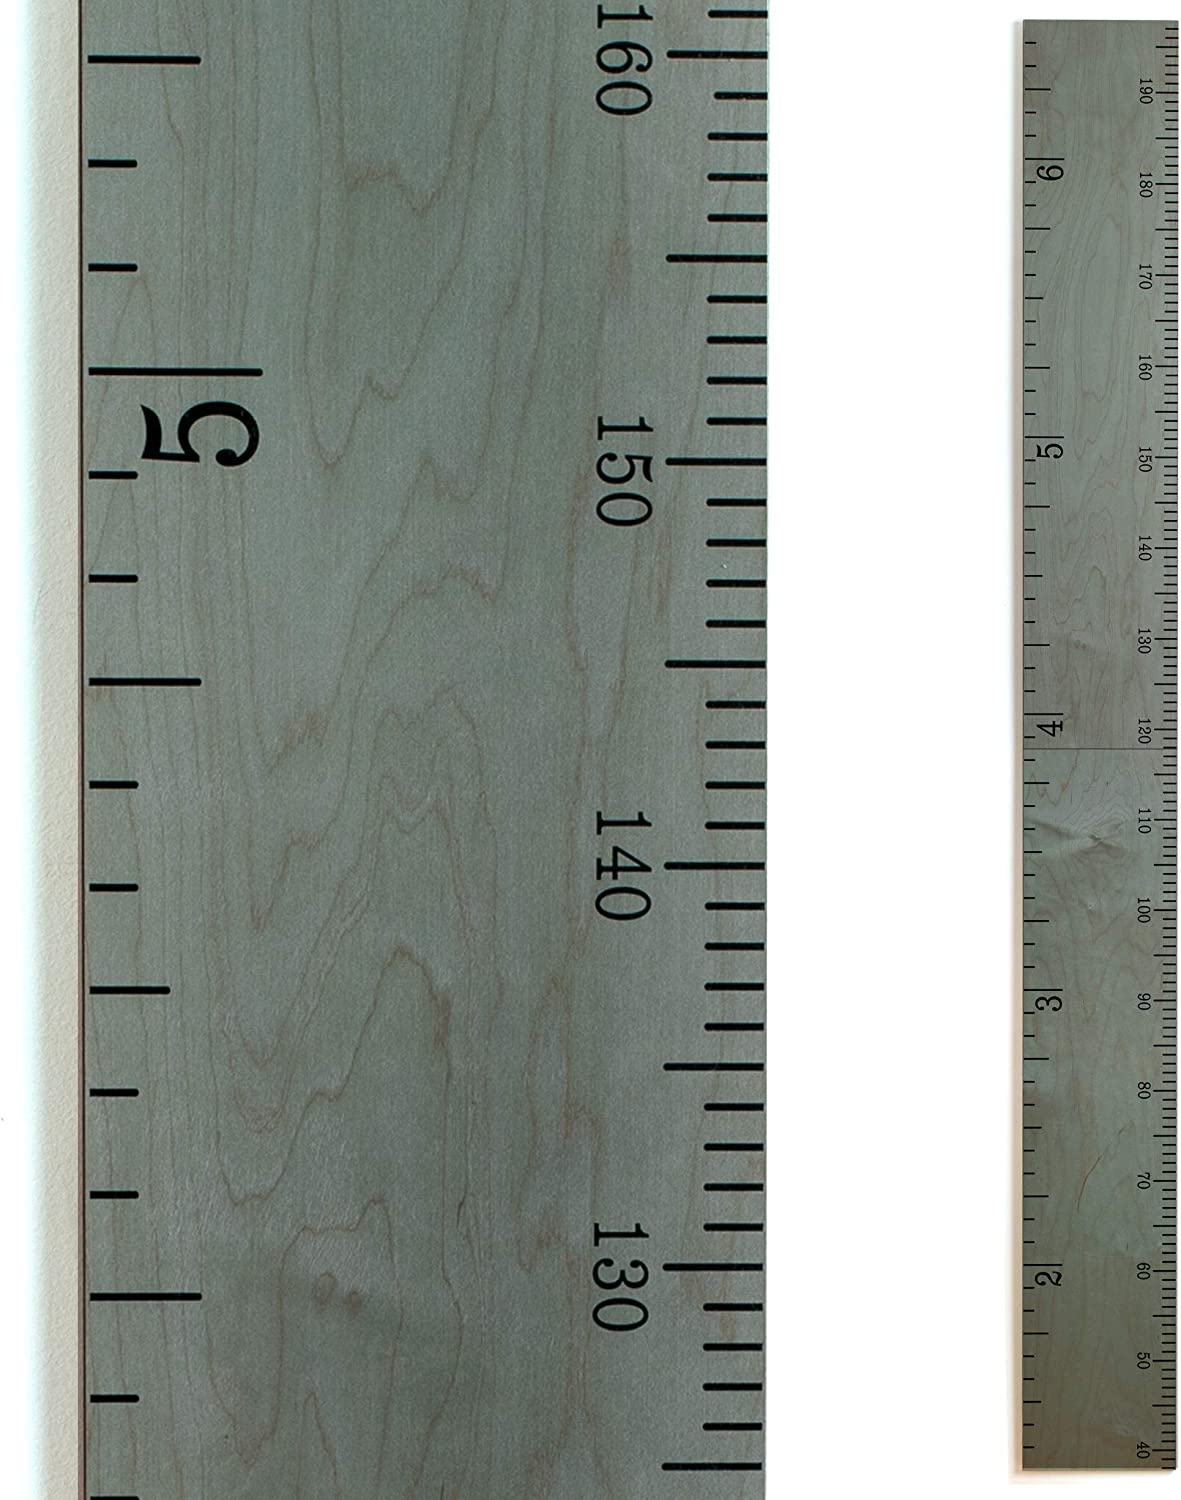 Wooden Growth Chart Ruler for Boys + Girls | Growth Chart Ruler Kids Height Chart | Classic Gray Wood Ruler Measurement with Inches/Centimeters